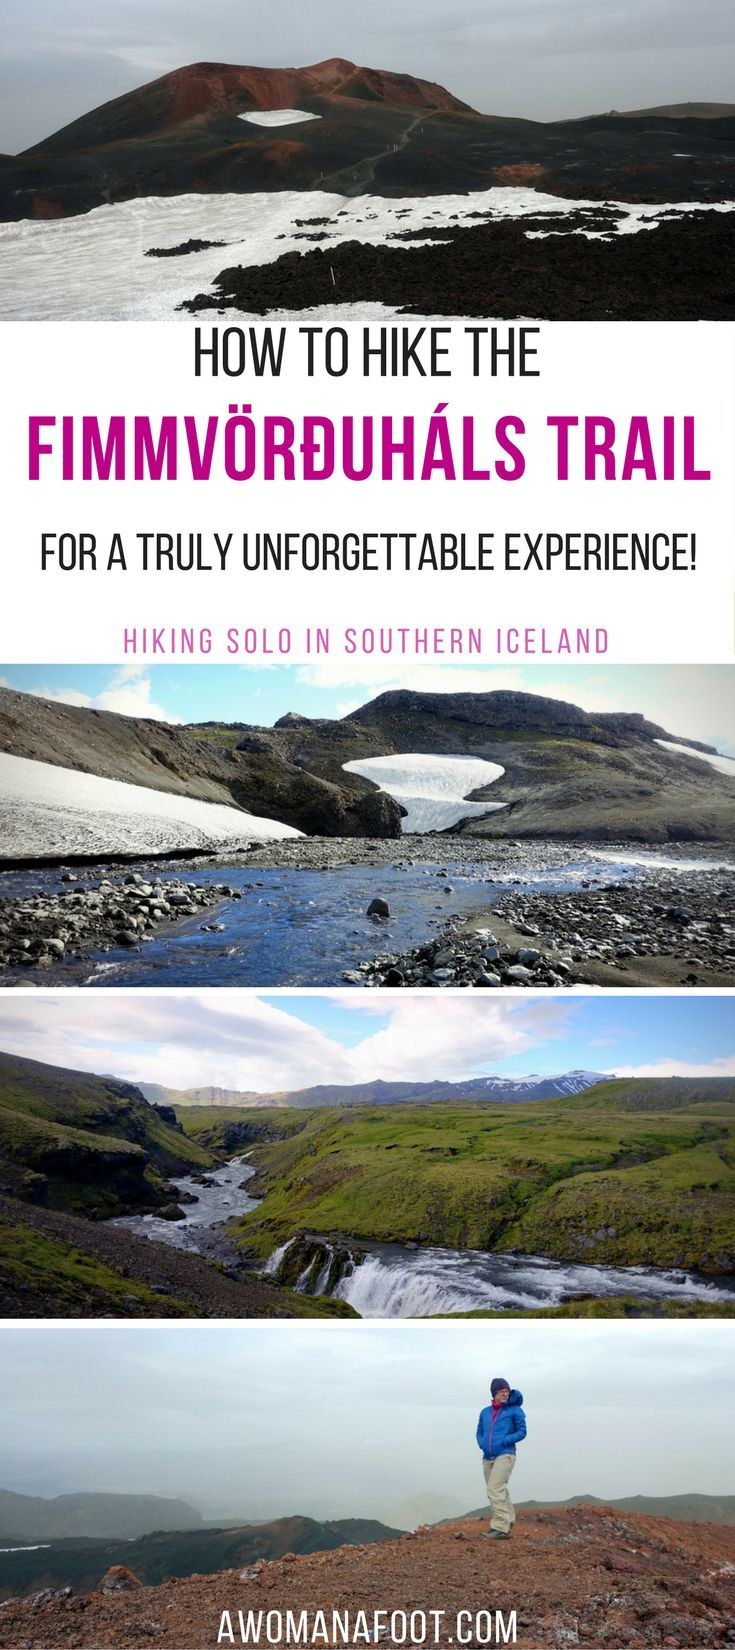 The Fimmvörðuháls trail in southern Iceland is a challenging and stunningly beautiful hiking path leading through the Land of Fire and Ice. | #Hiking in #Iceland | Skogar | #Thorsmork | Iceland Travel |  #Solo #travel | #glacier |#vulcano Awomanafoot.com